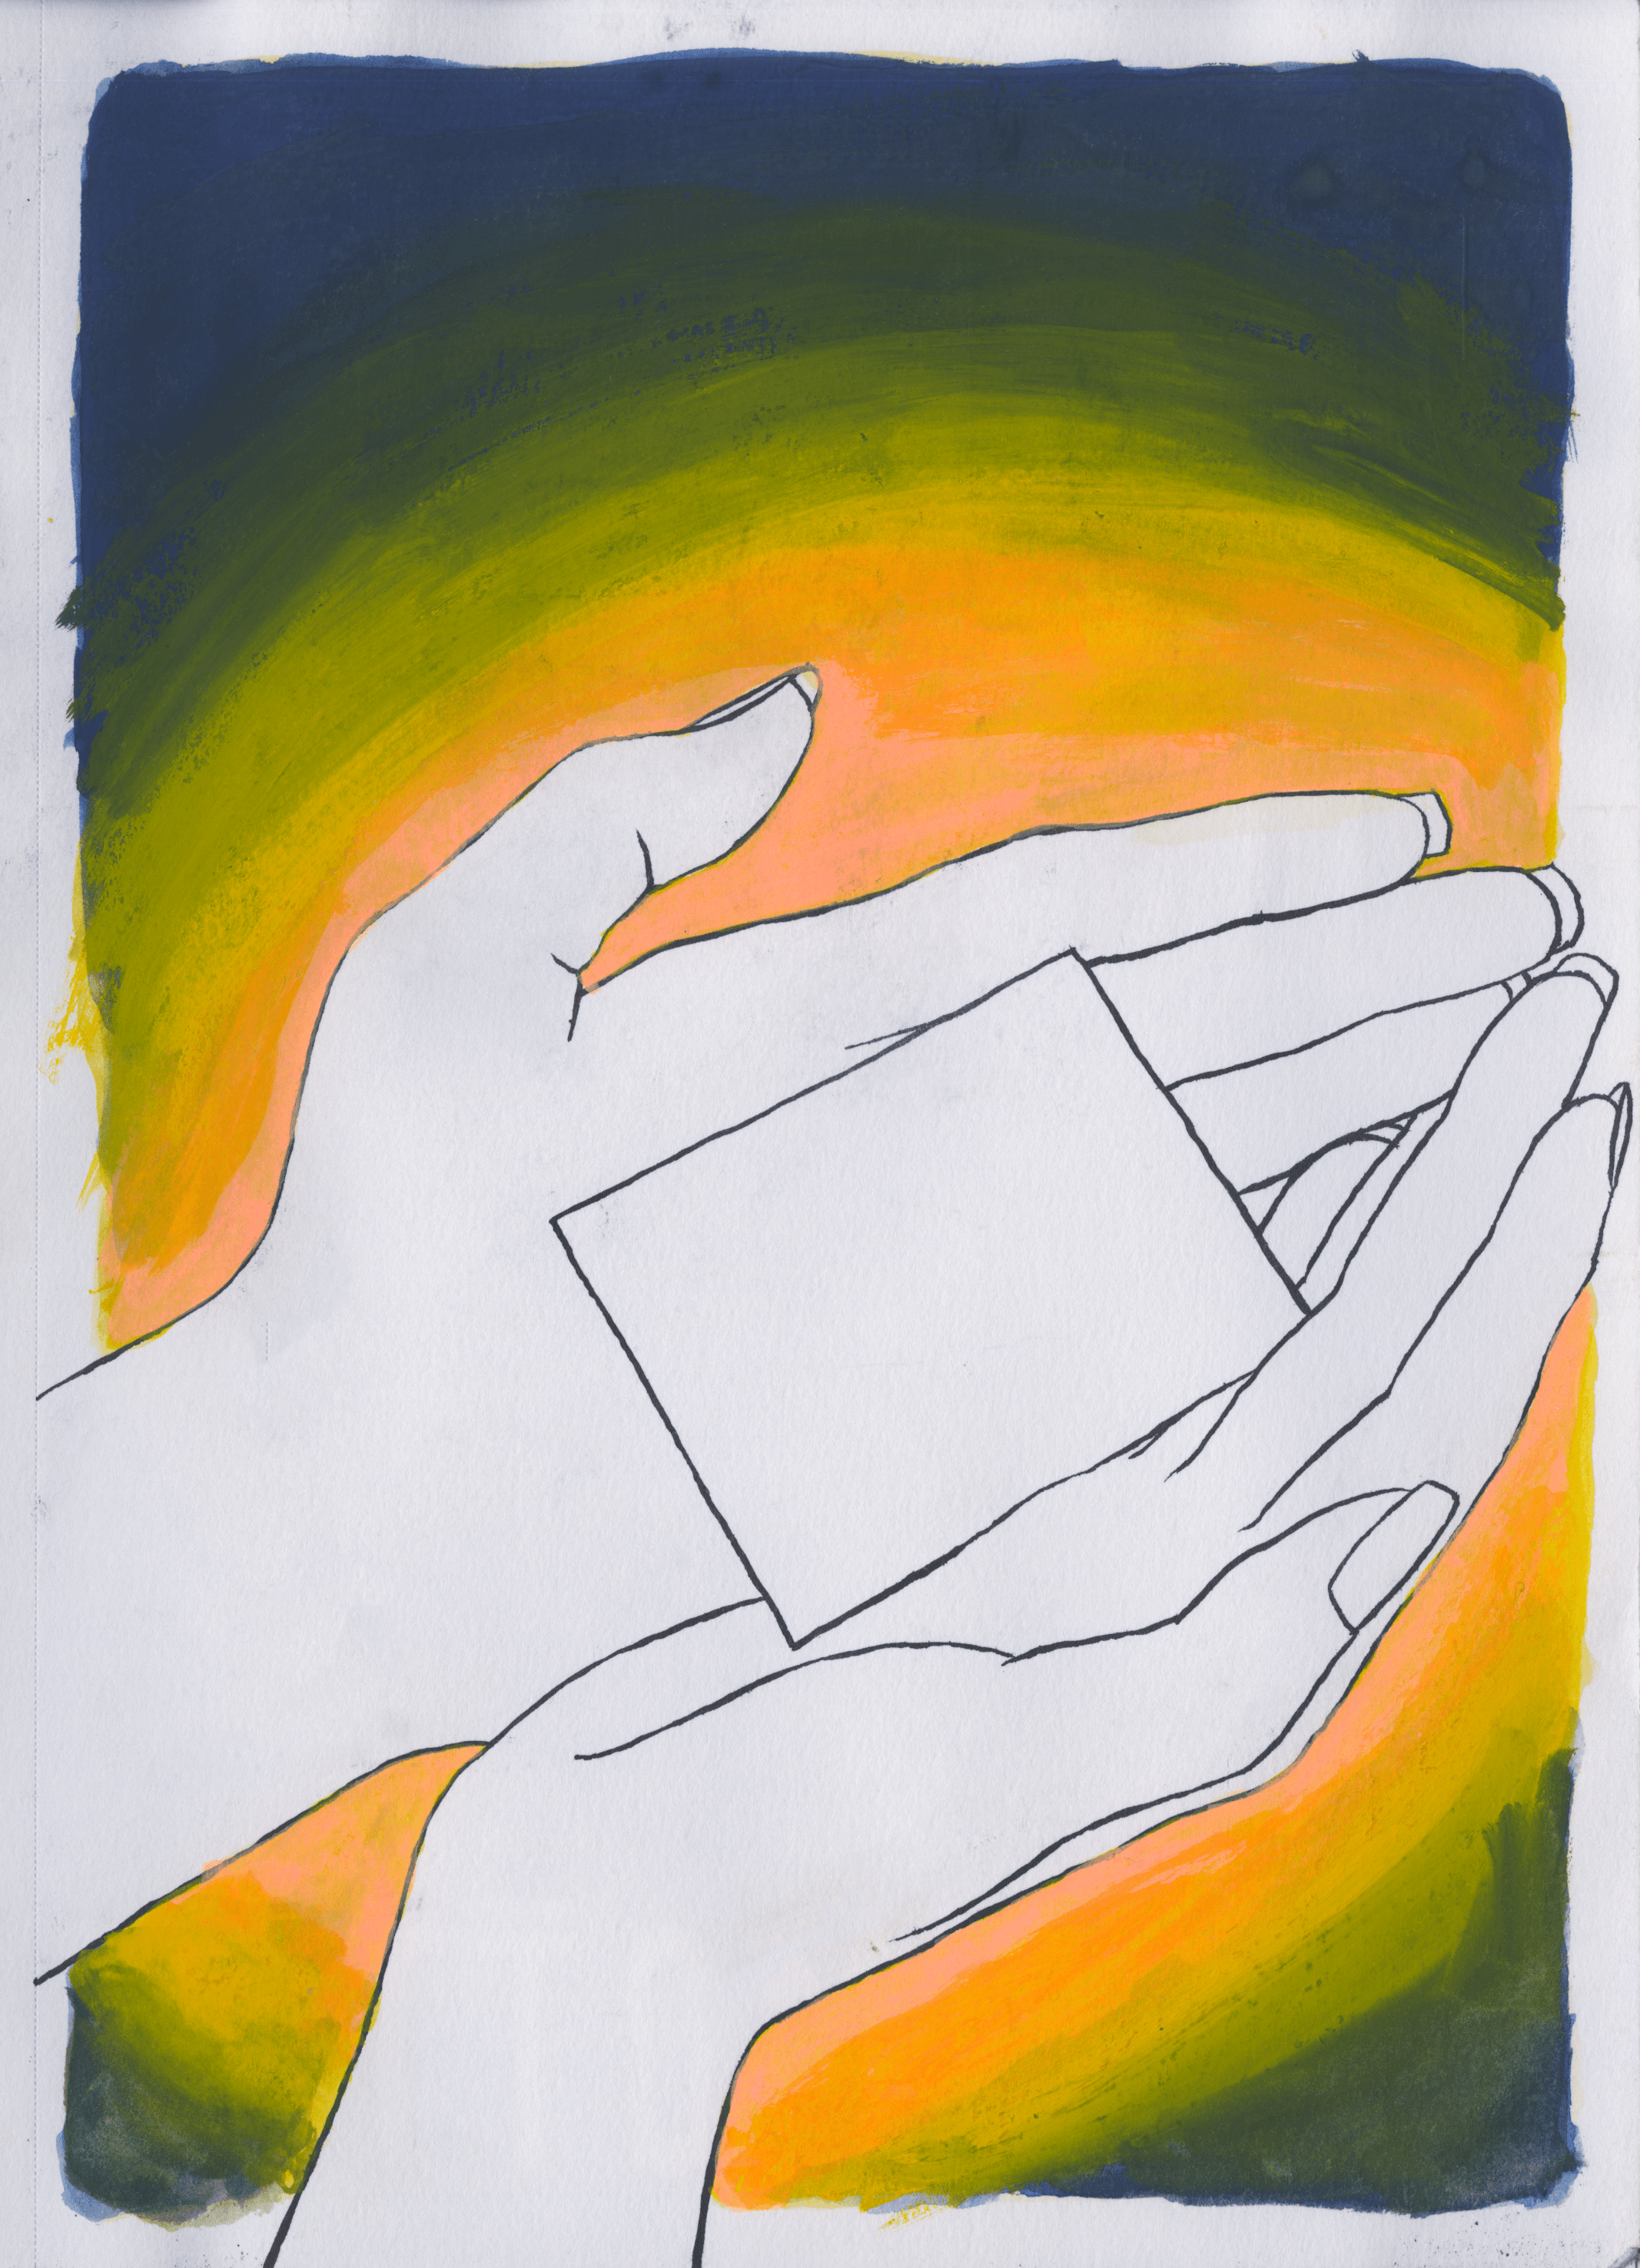 Letter in Hands